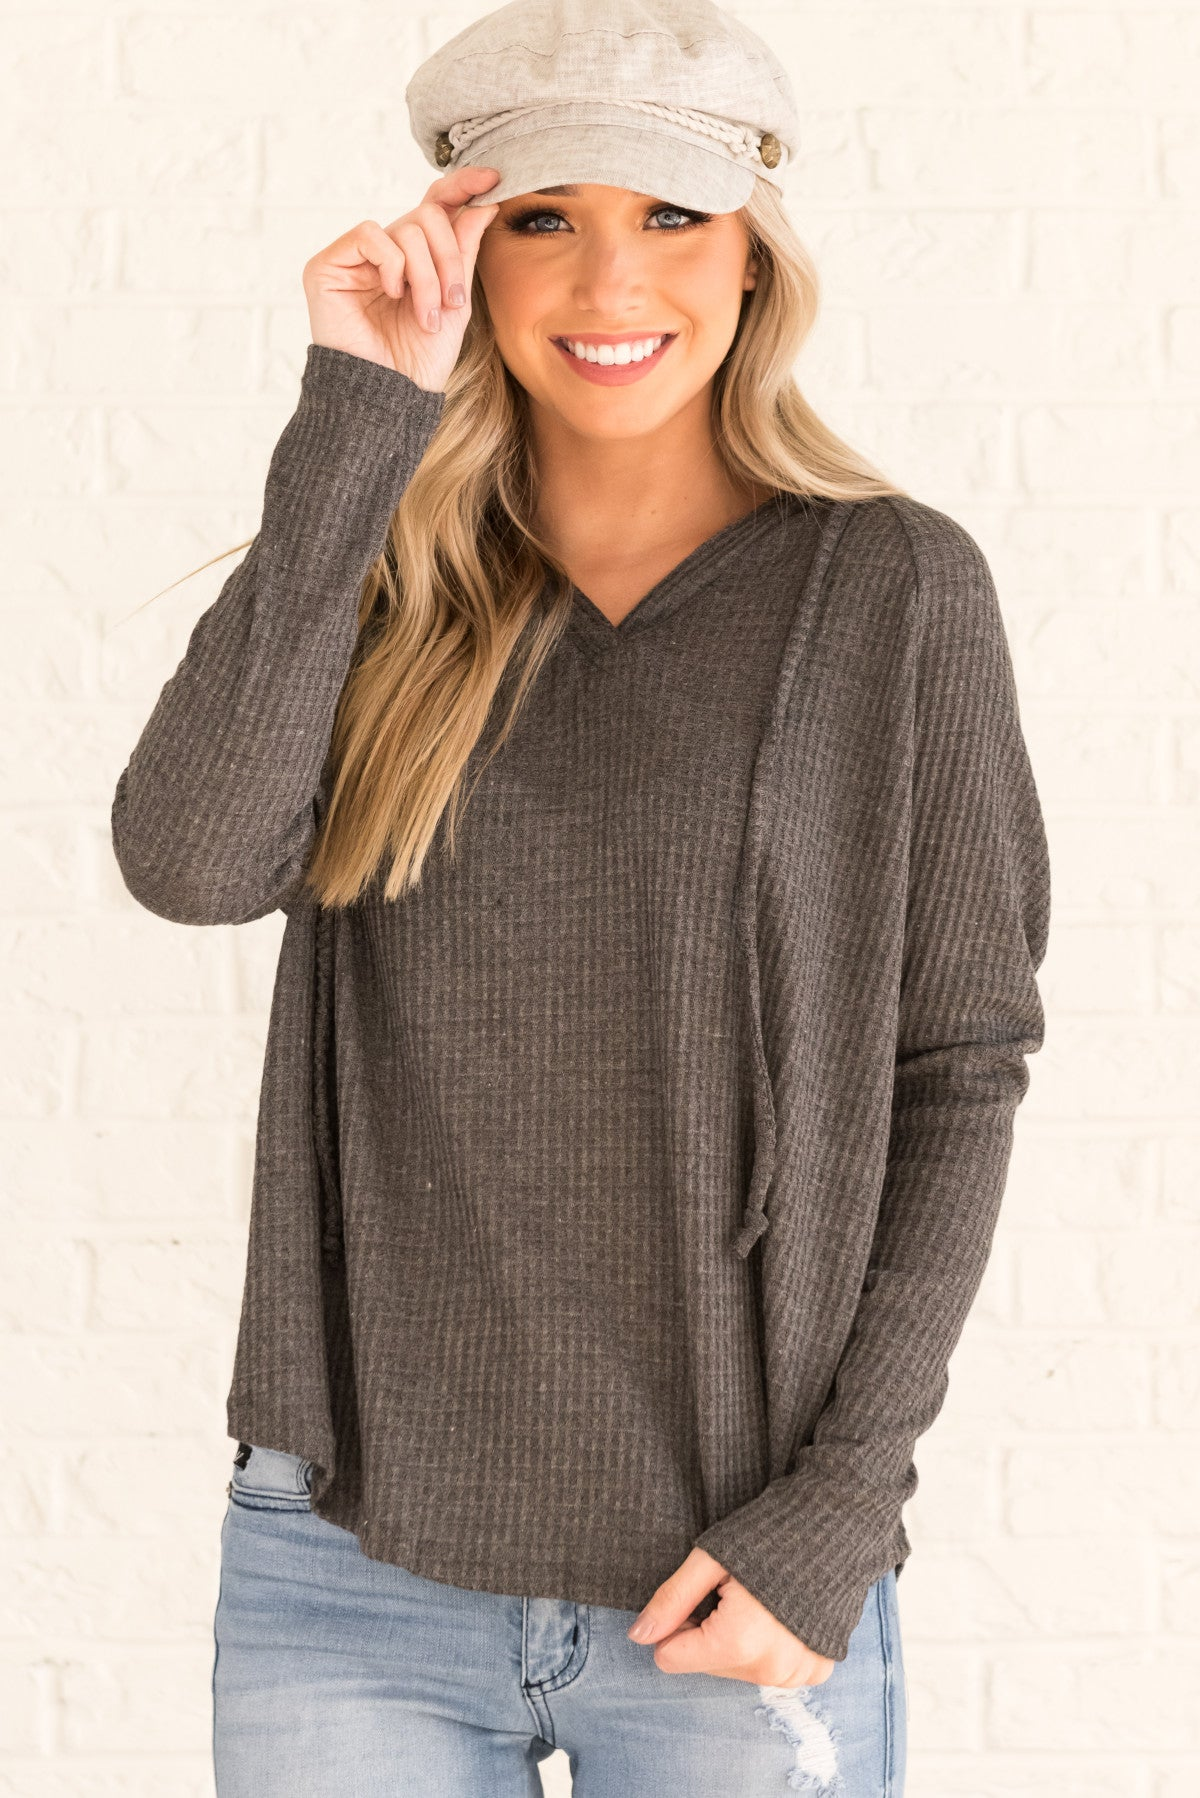 Charcoal Gray Hooded Boutique Tops for Women